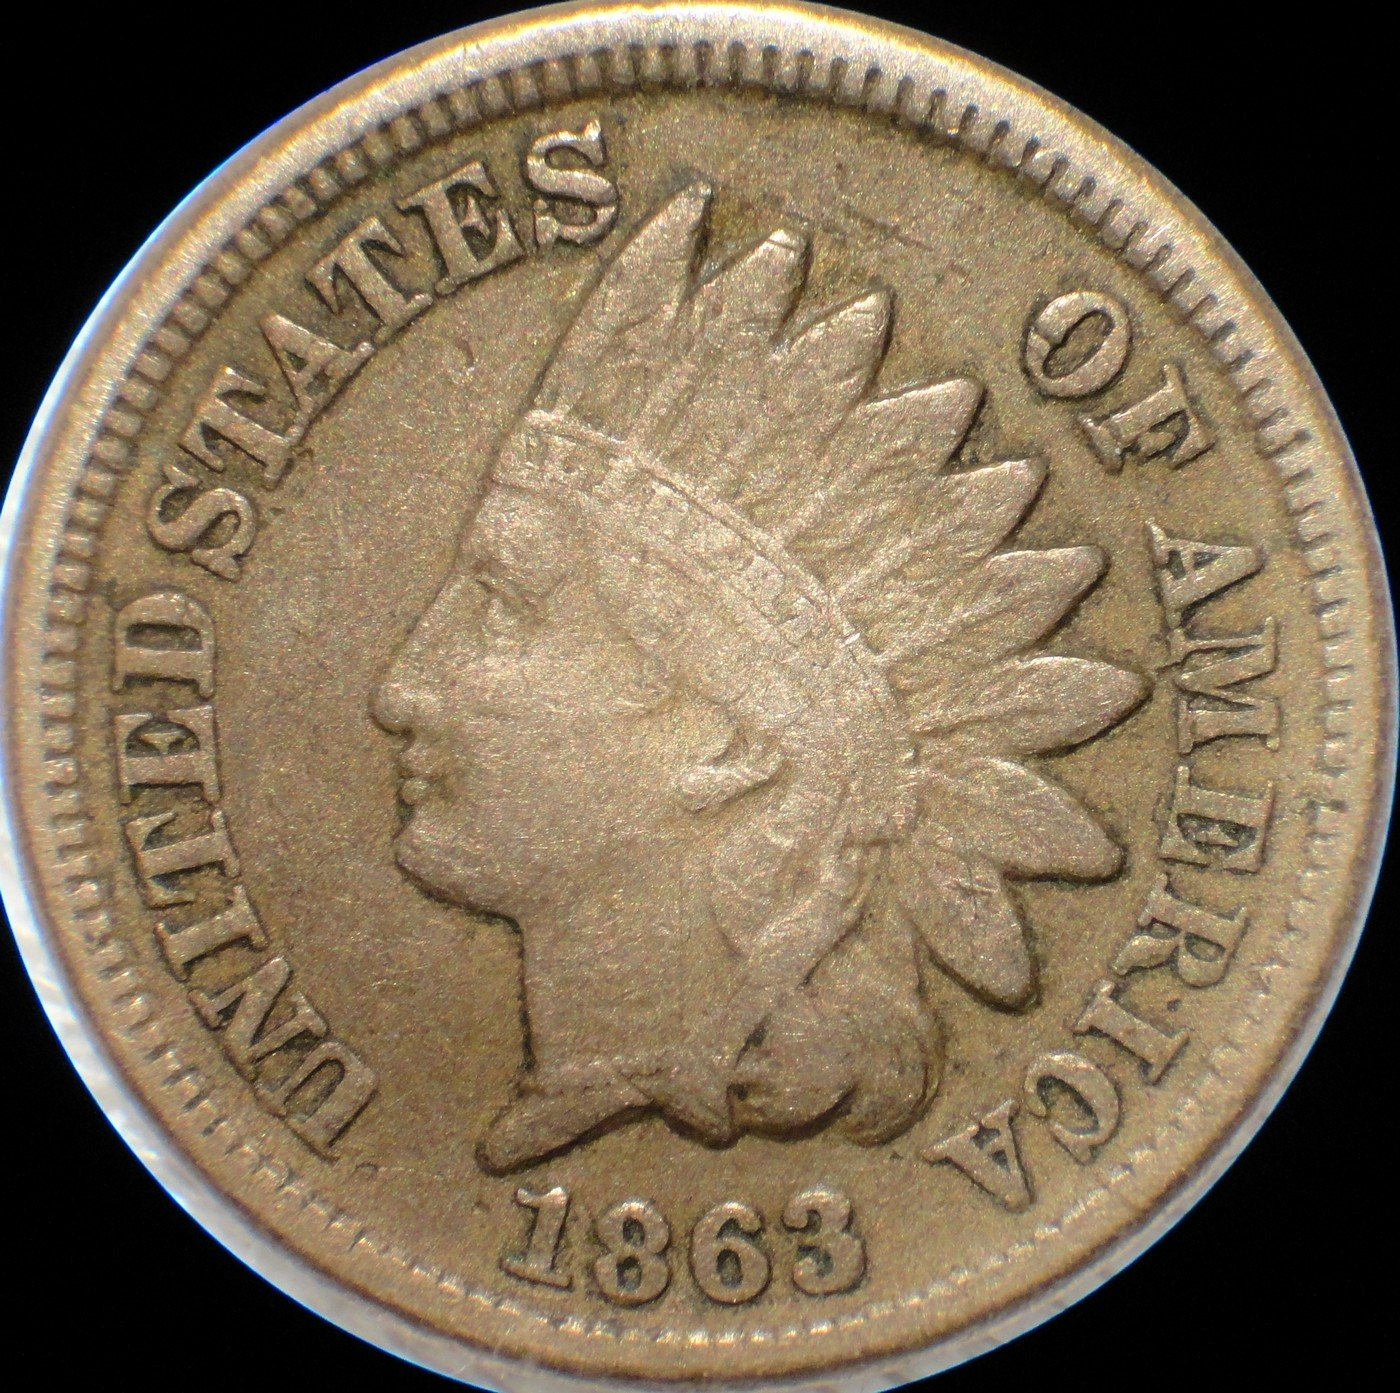 1863 Obverse of CRK-002 - Indian Head Penny